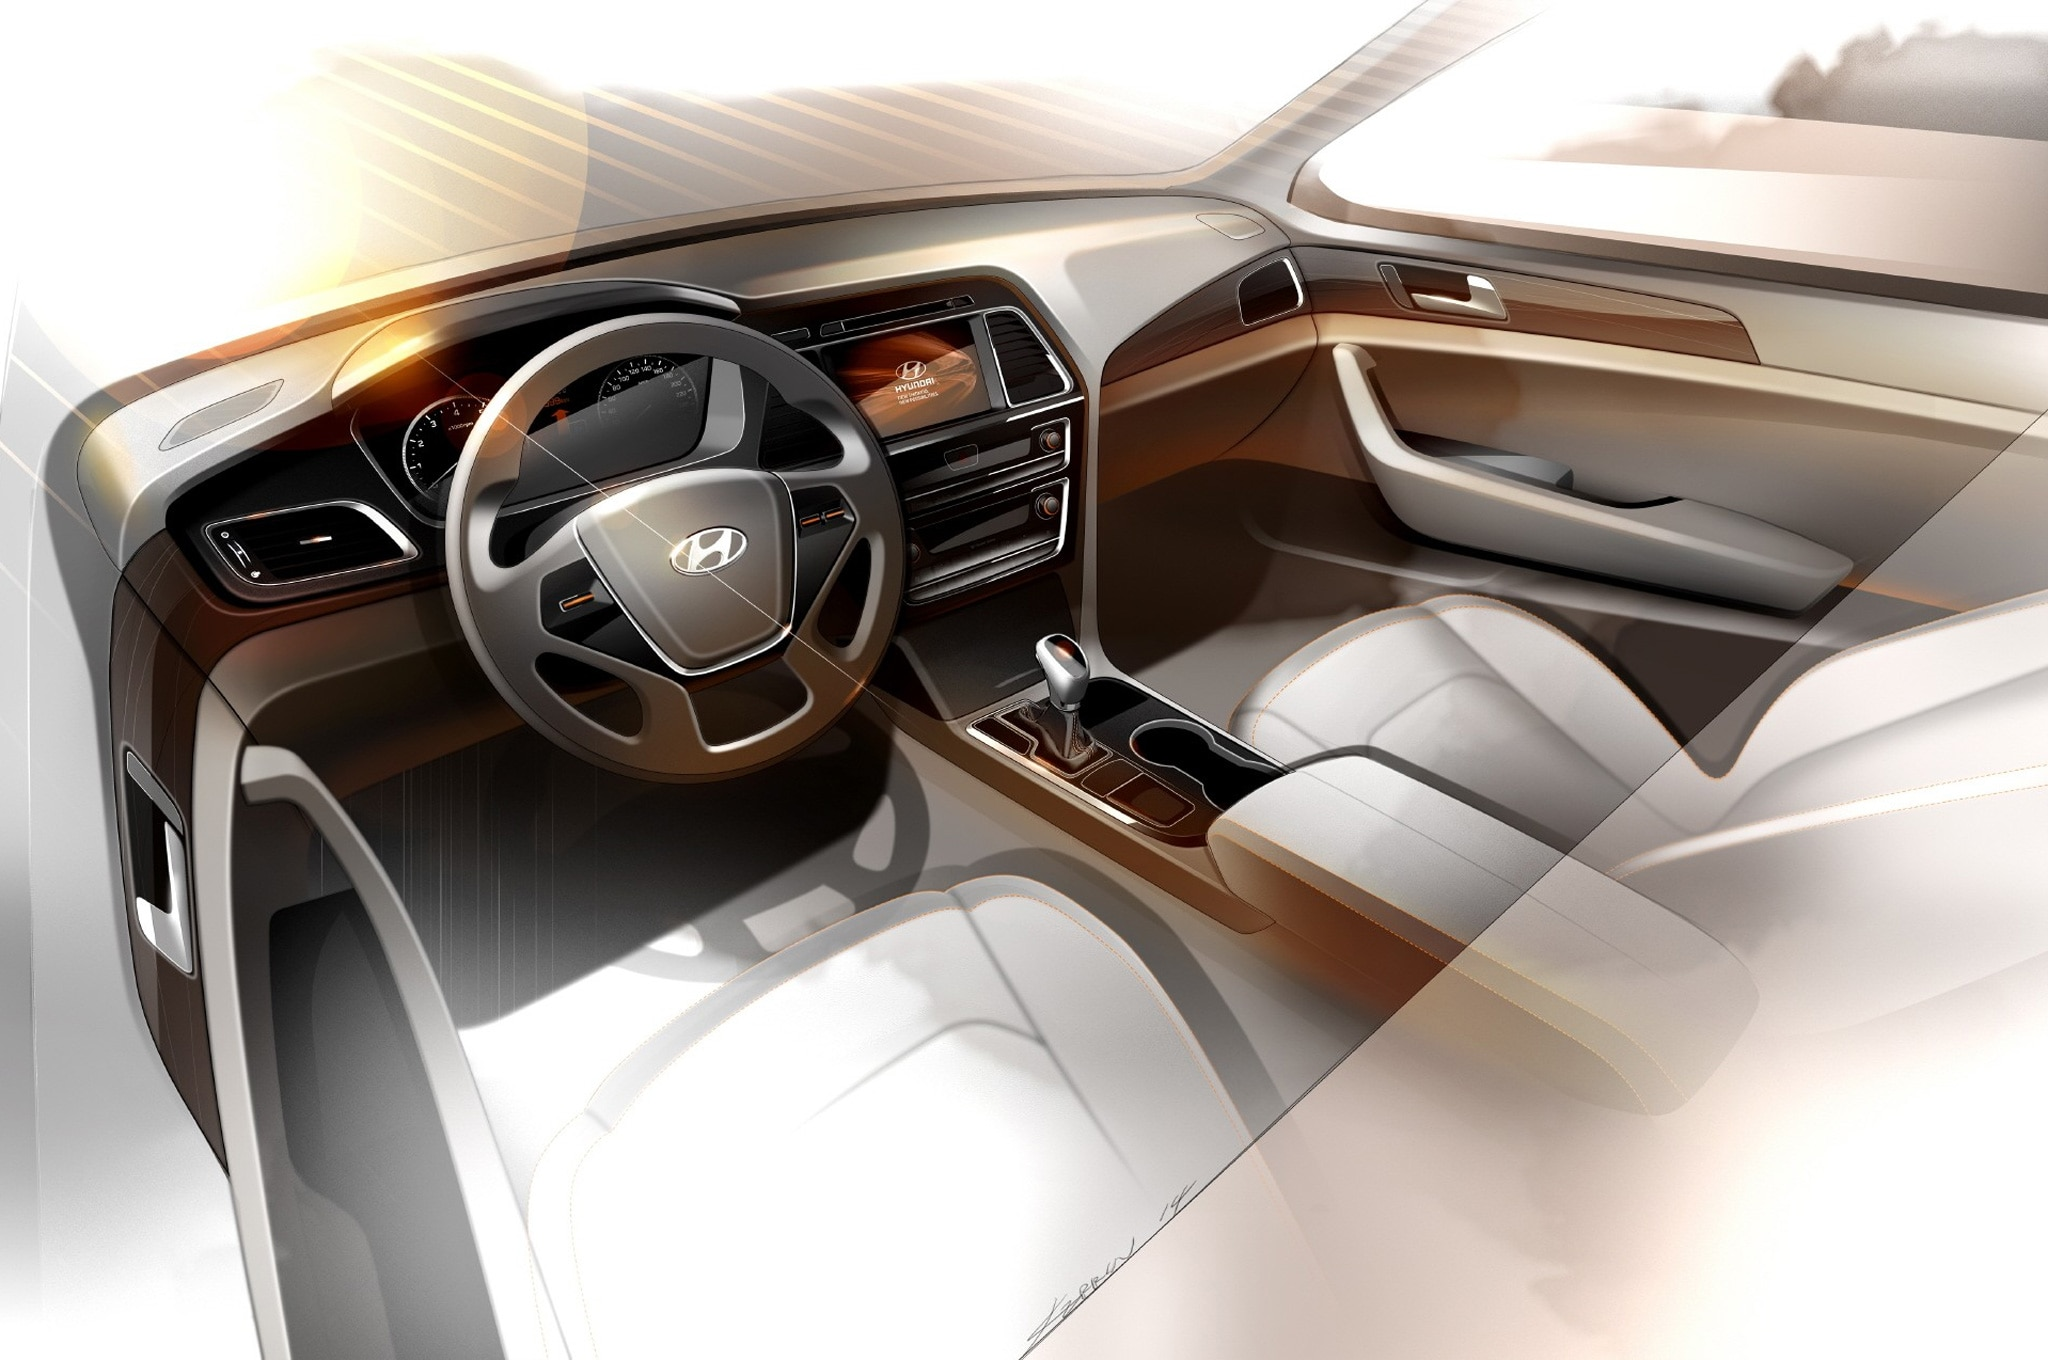 2015 hyundai sonata interior teased automobile magazine - 2015 hyundai sonata interior pictures ...